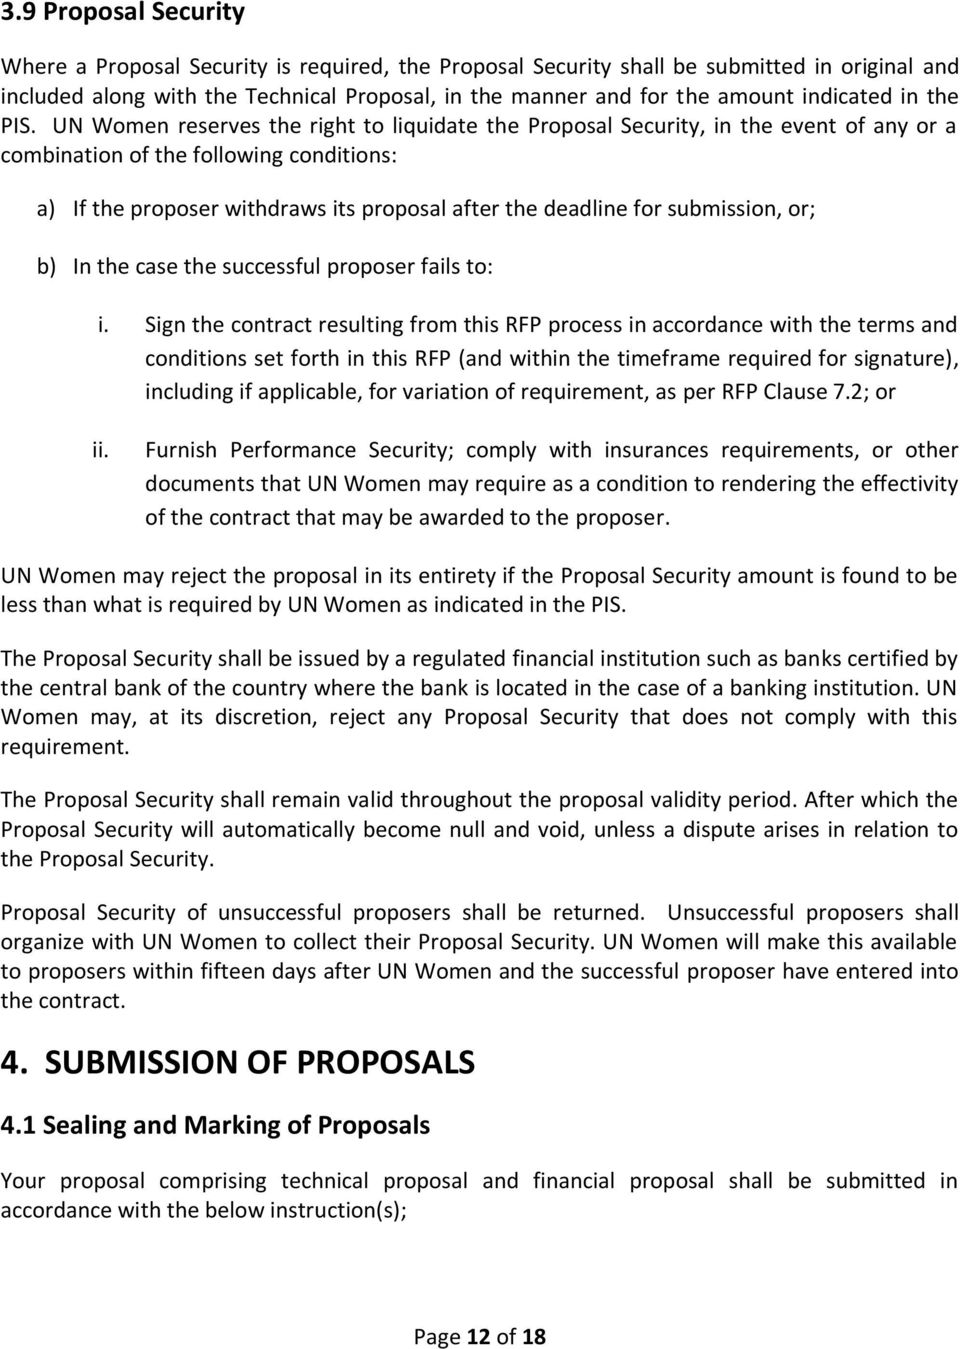 UN Women reserves the right to liquidate the Proposal Security, in the event of any or a combination of the following conditions: a) If the proposer withdraws its proposal after the deadline for